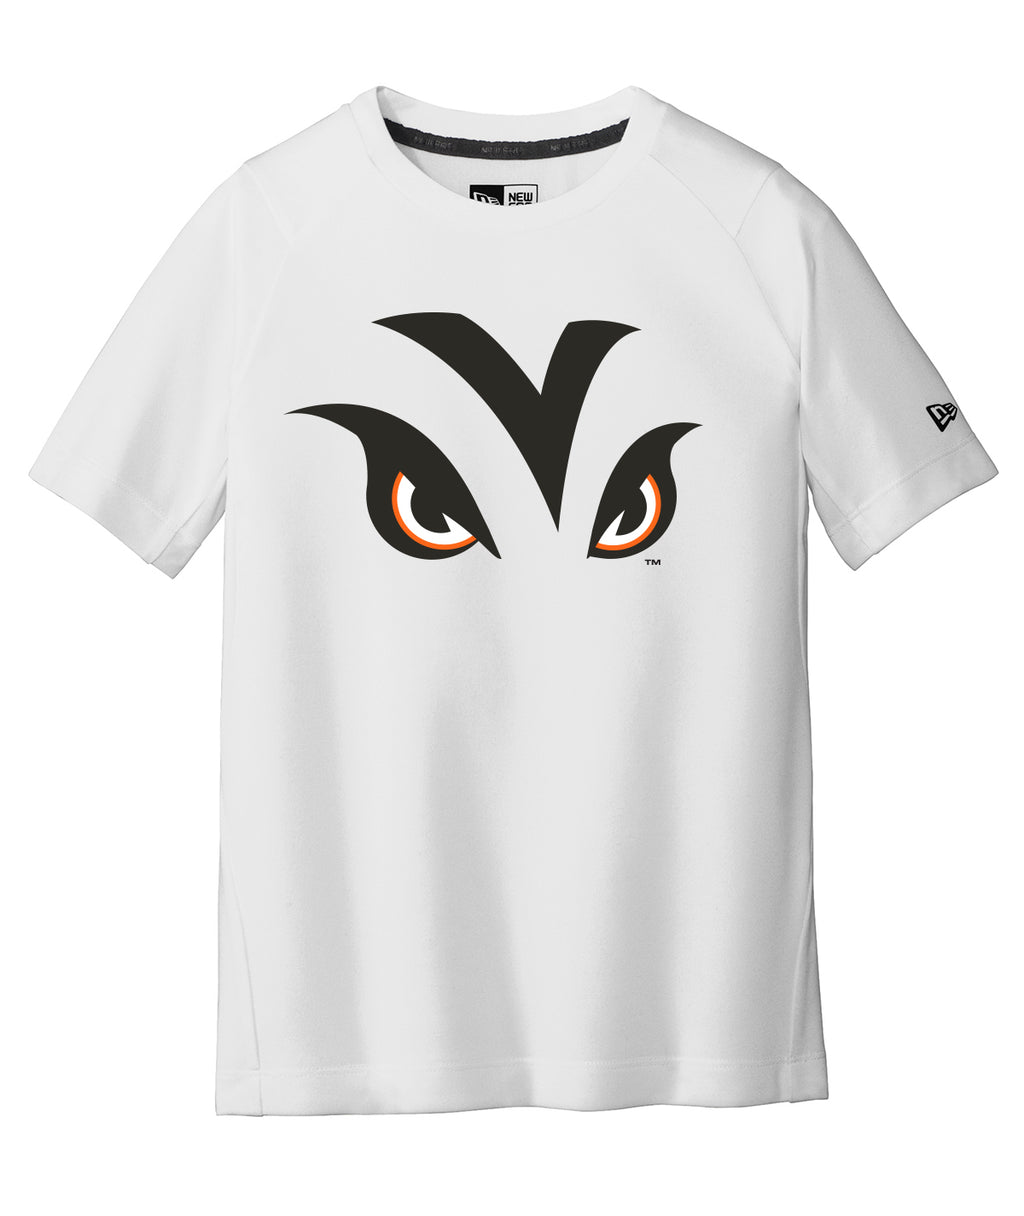 Tiger Eyes Youth New Era Performance Tee